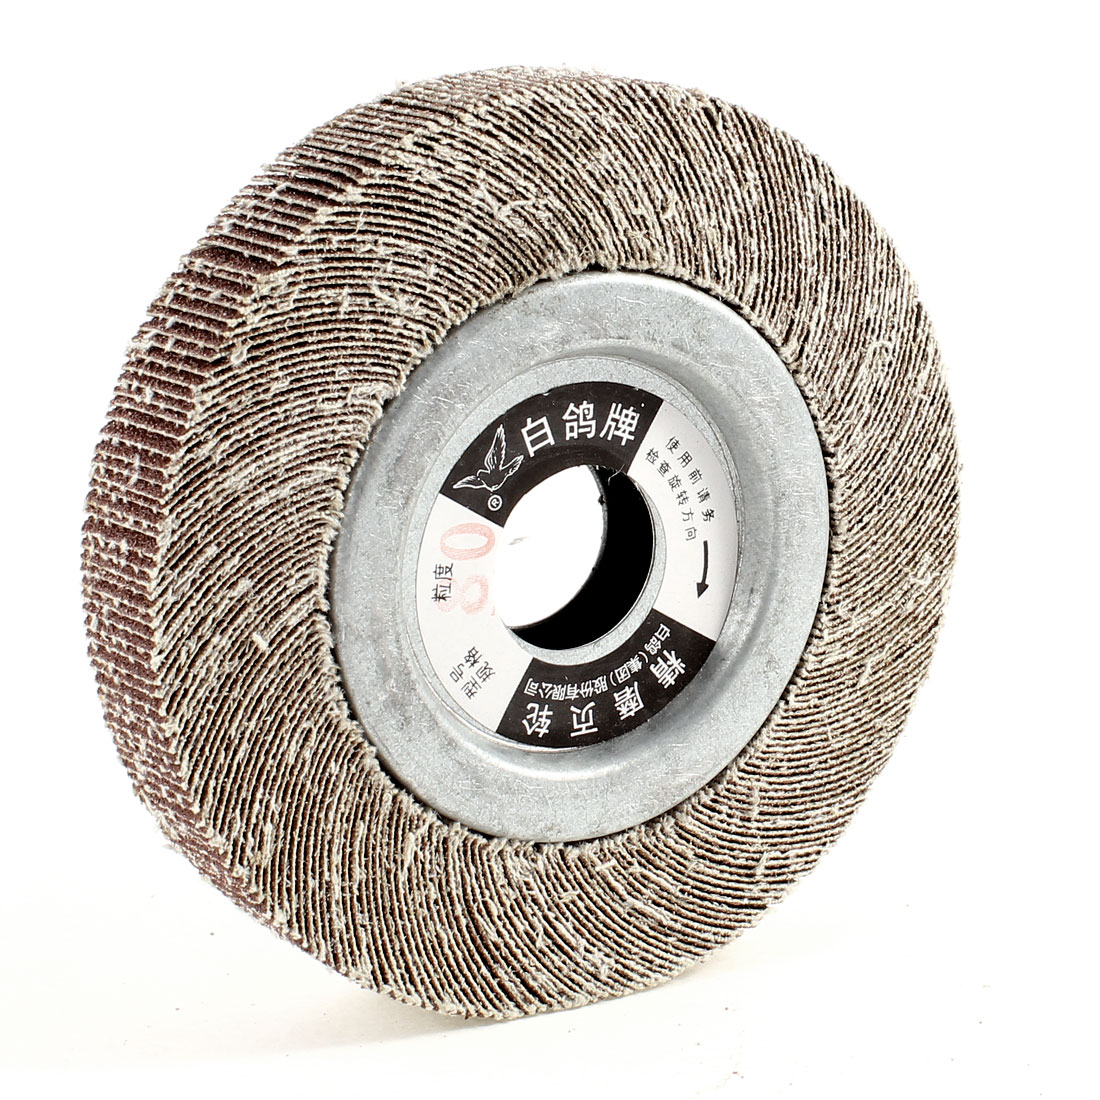 120mm x 25mm x 25mm Double Sides Abrasive Flap Disc Polishing Wheel